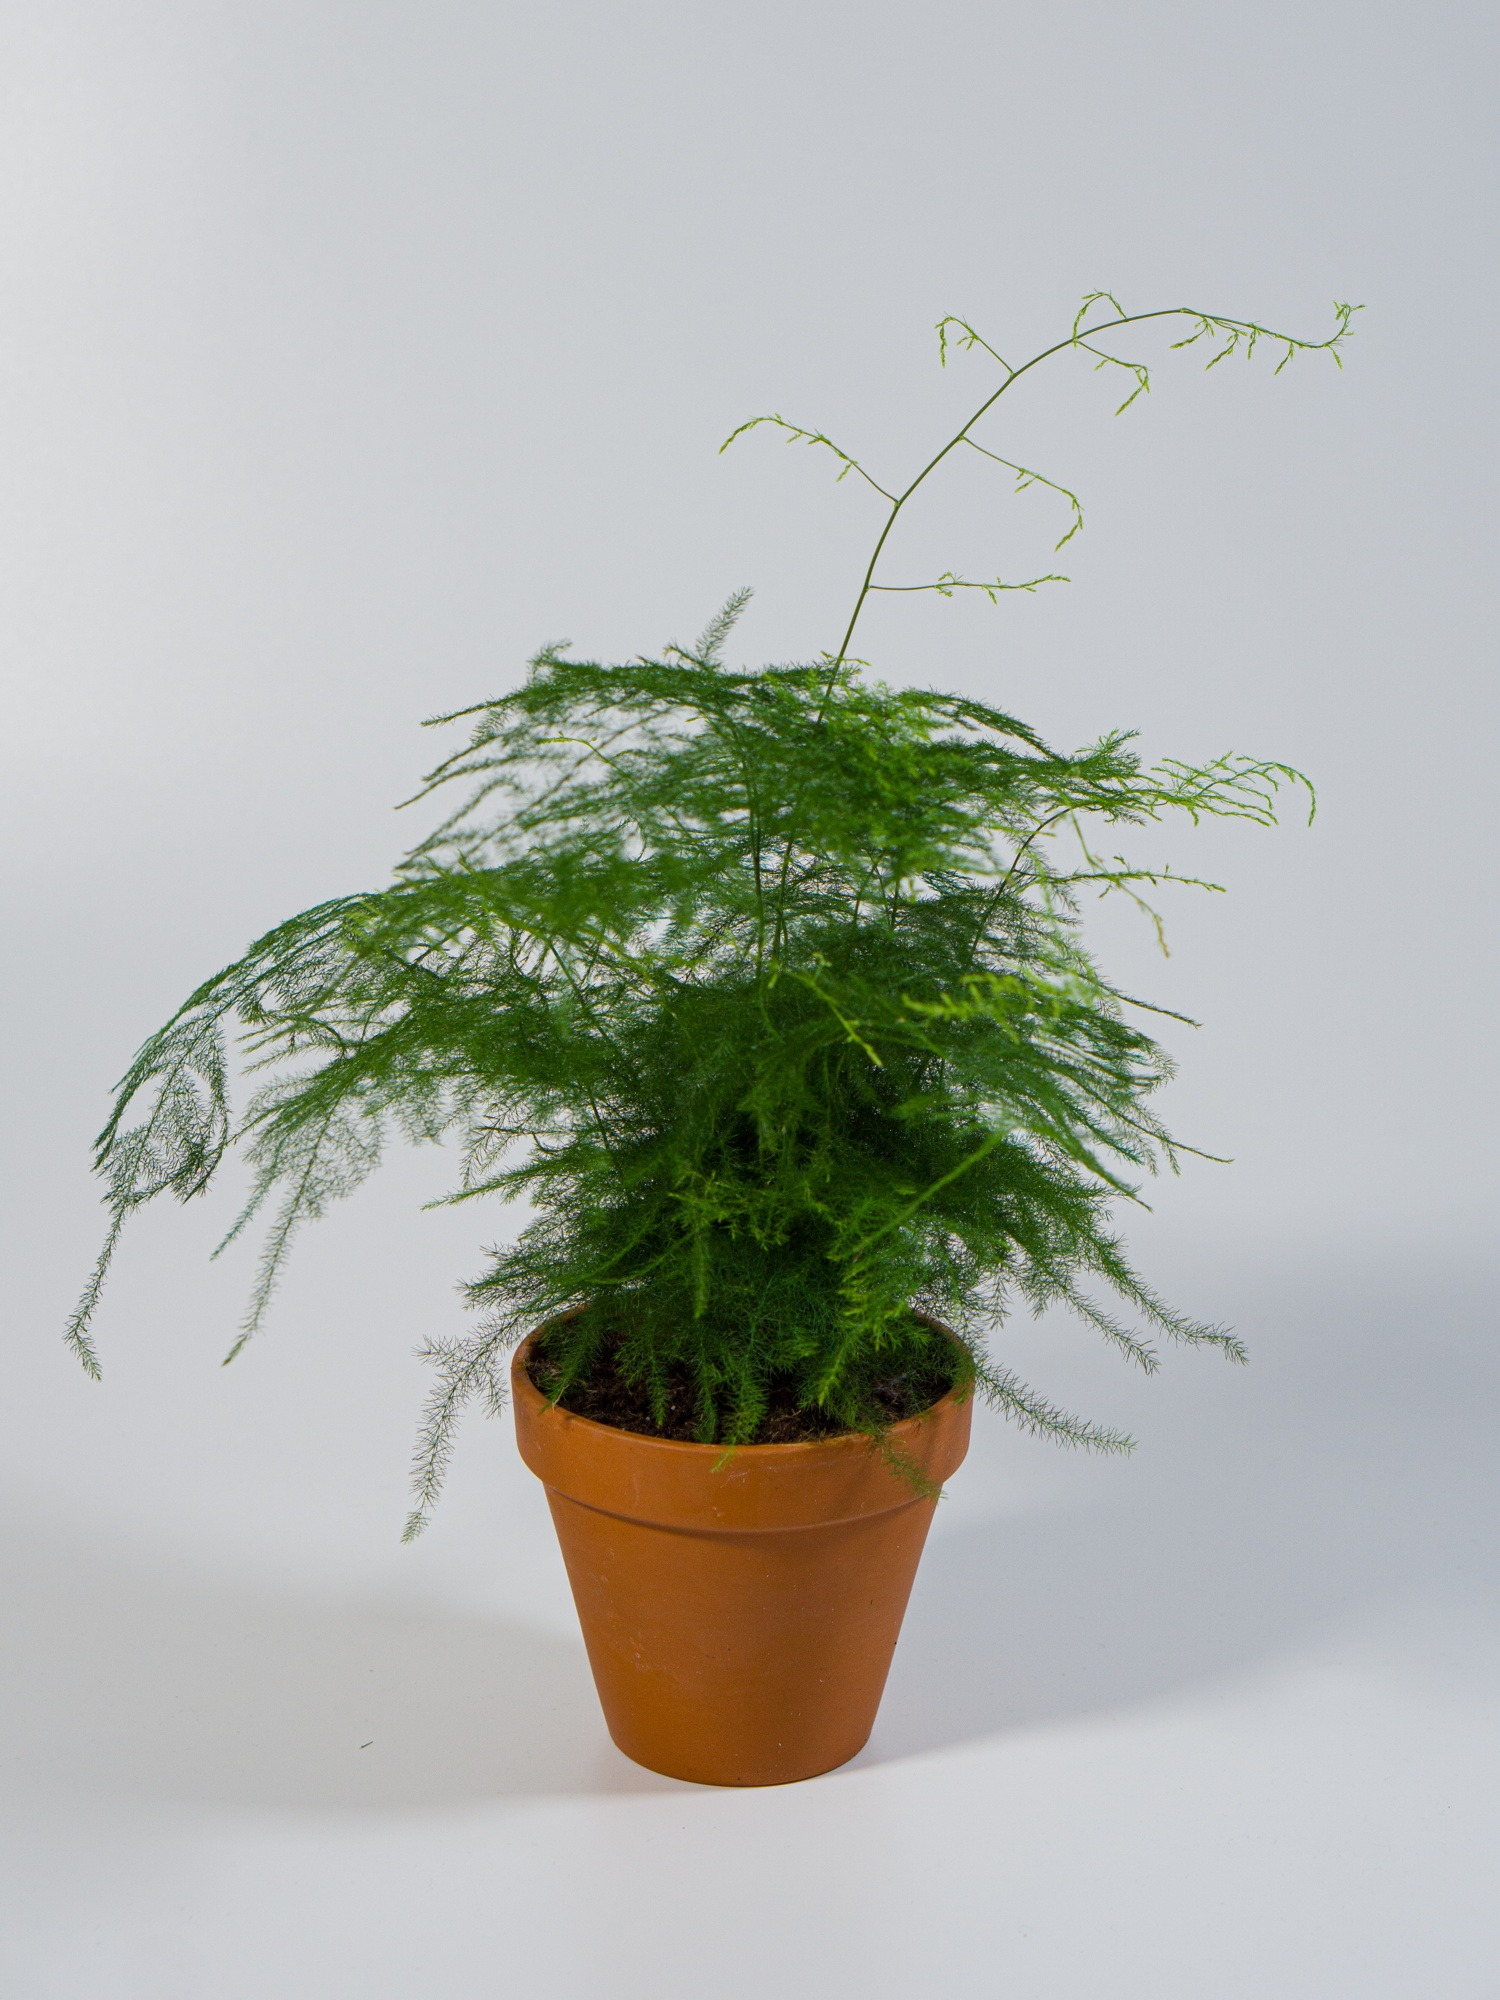 Asparagus Fern Asparagus Densiflorus For Sale In Bristol Little Green